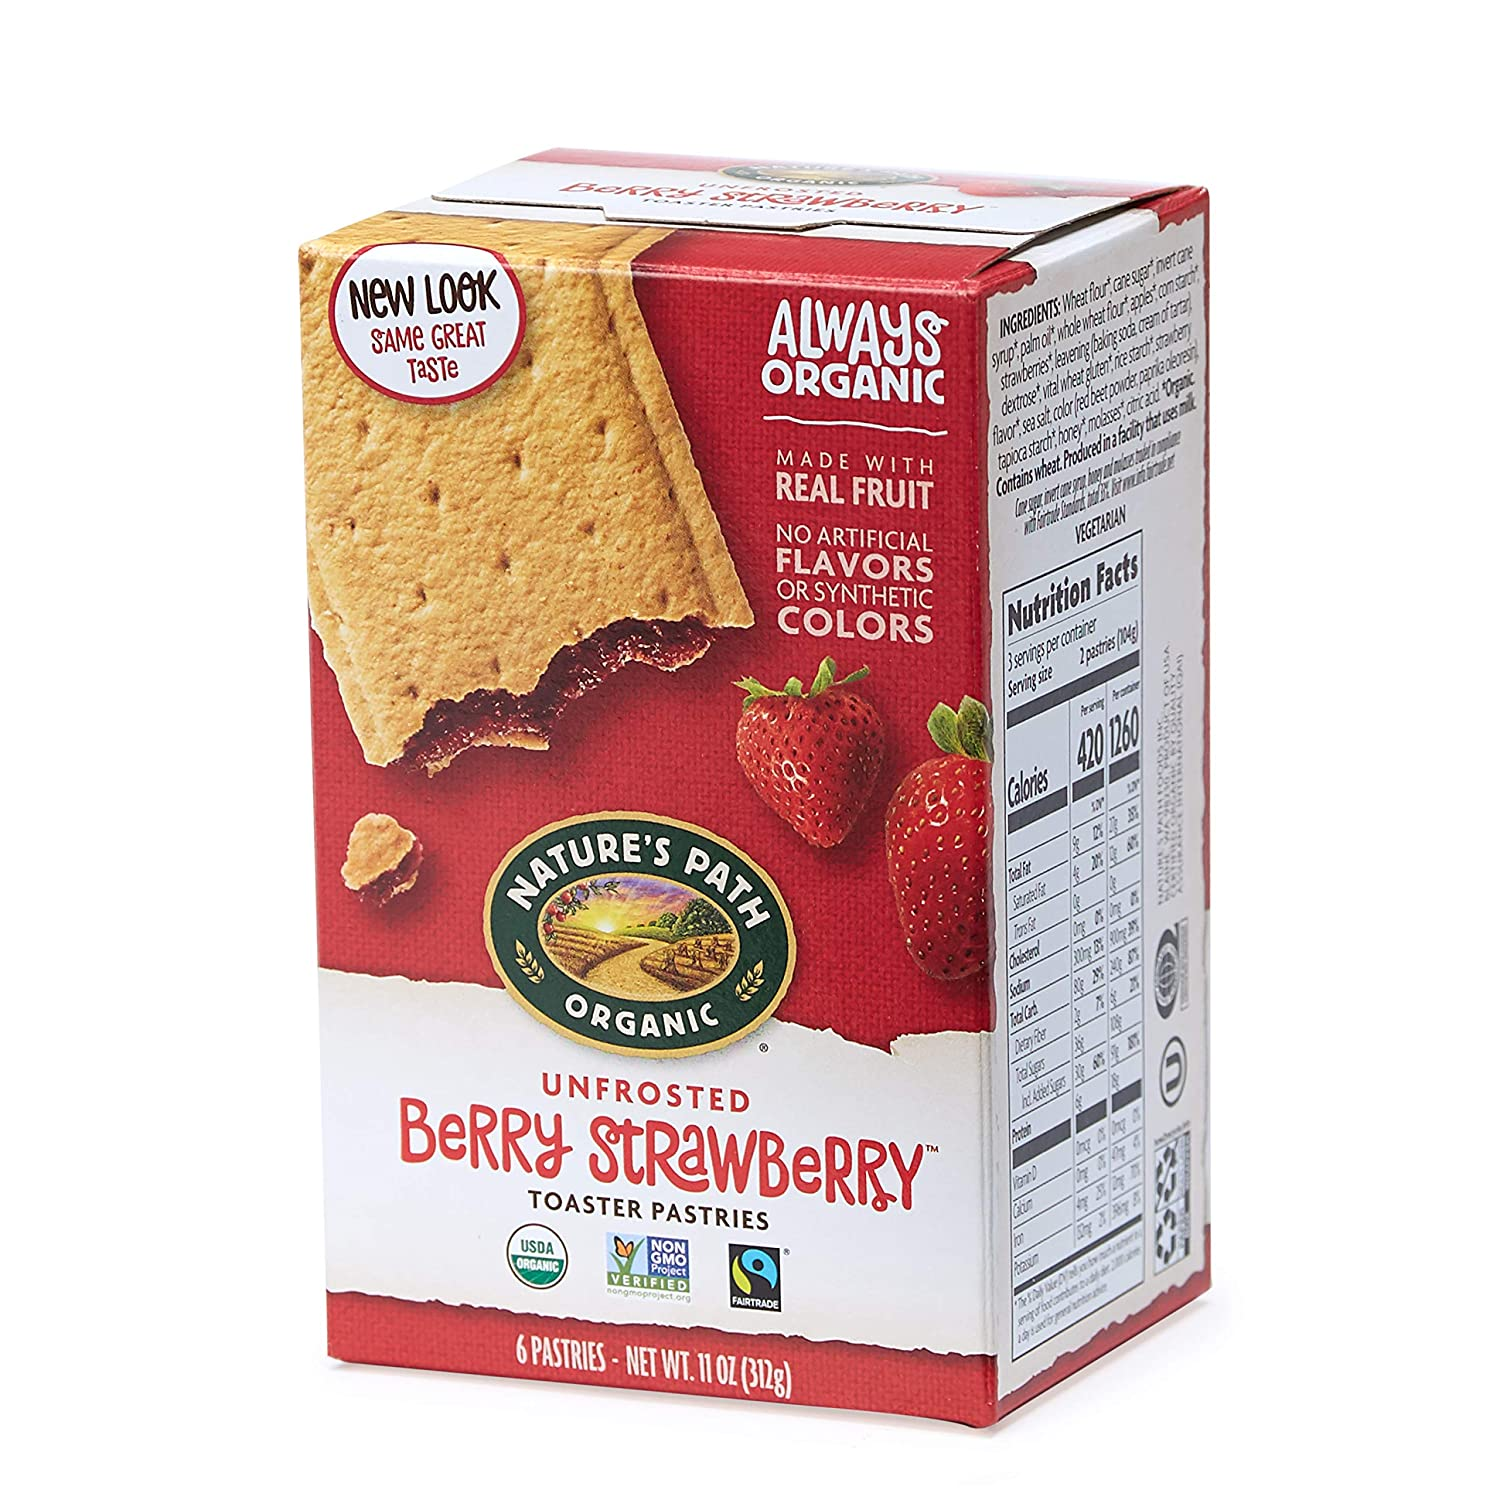 Nature's Path Unfrosted Berry Strawberry Toaster Pastries, Healthy, Organic, 11-Ounce Box (Pack of 12)